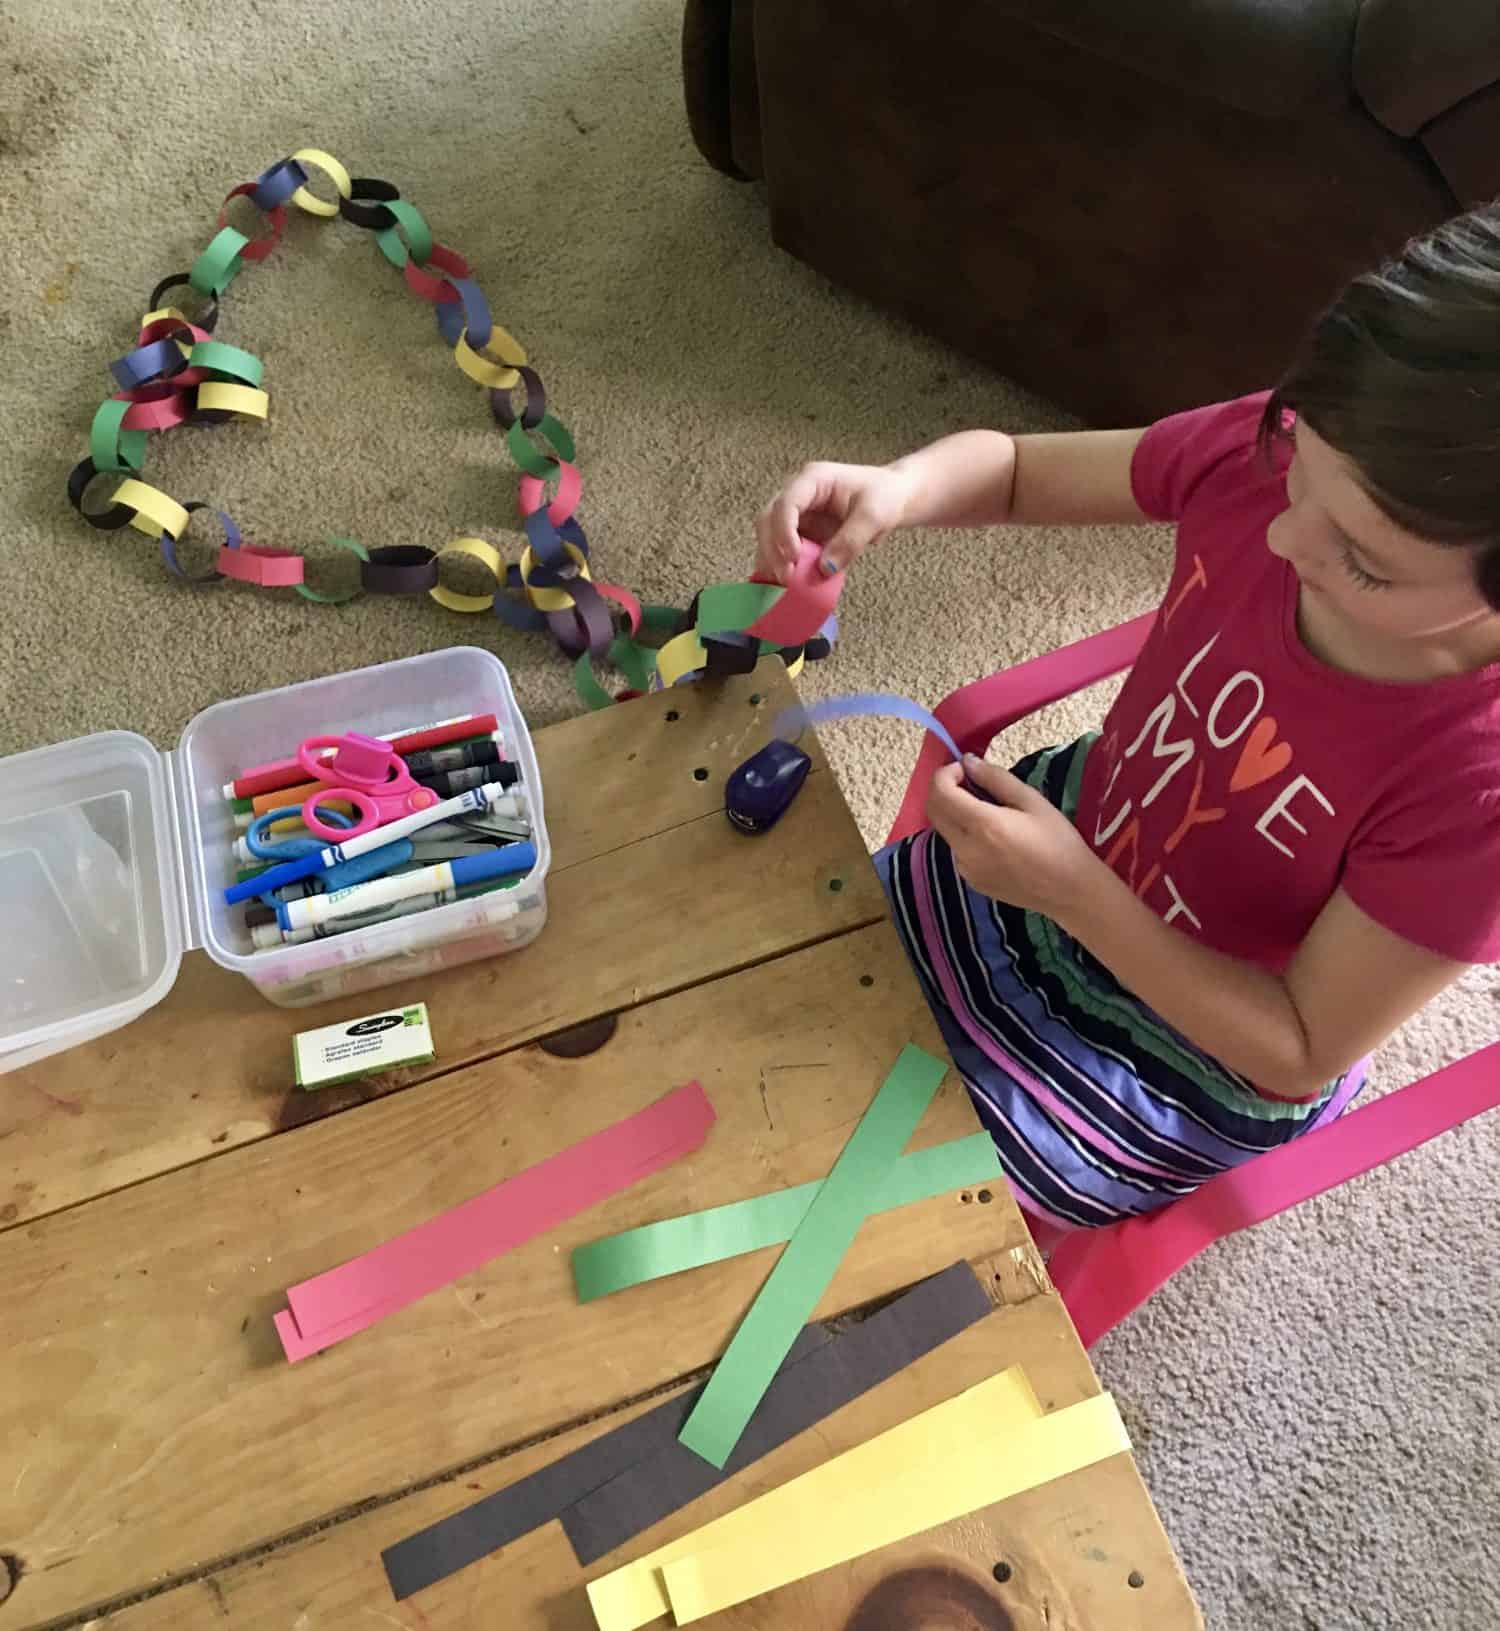 girl putting together a paper chain in the color of the Olympic rings